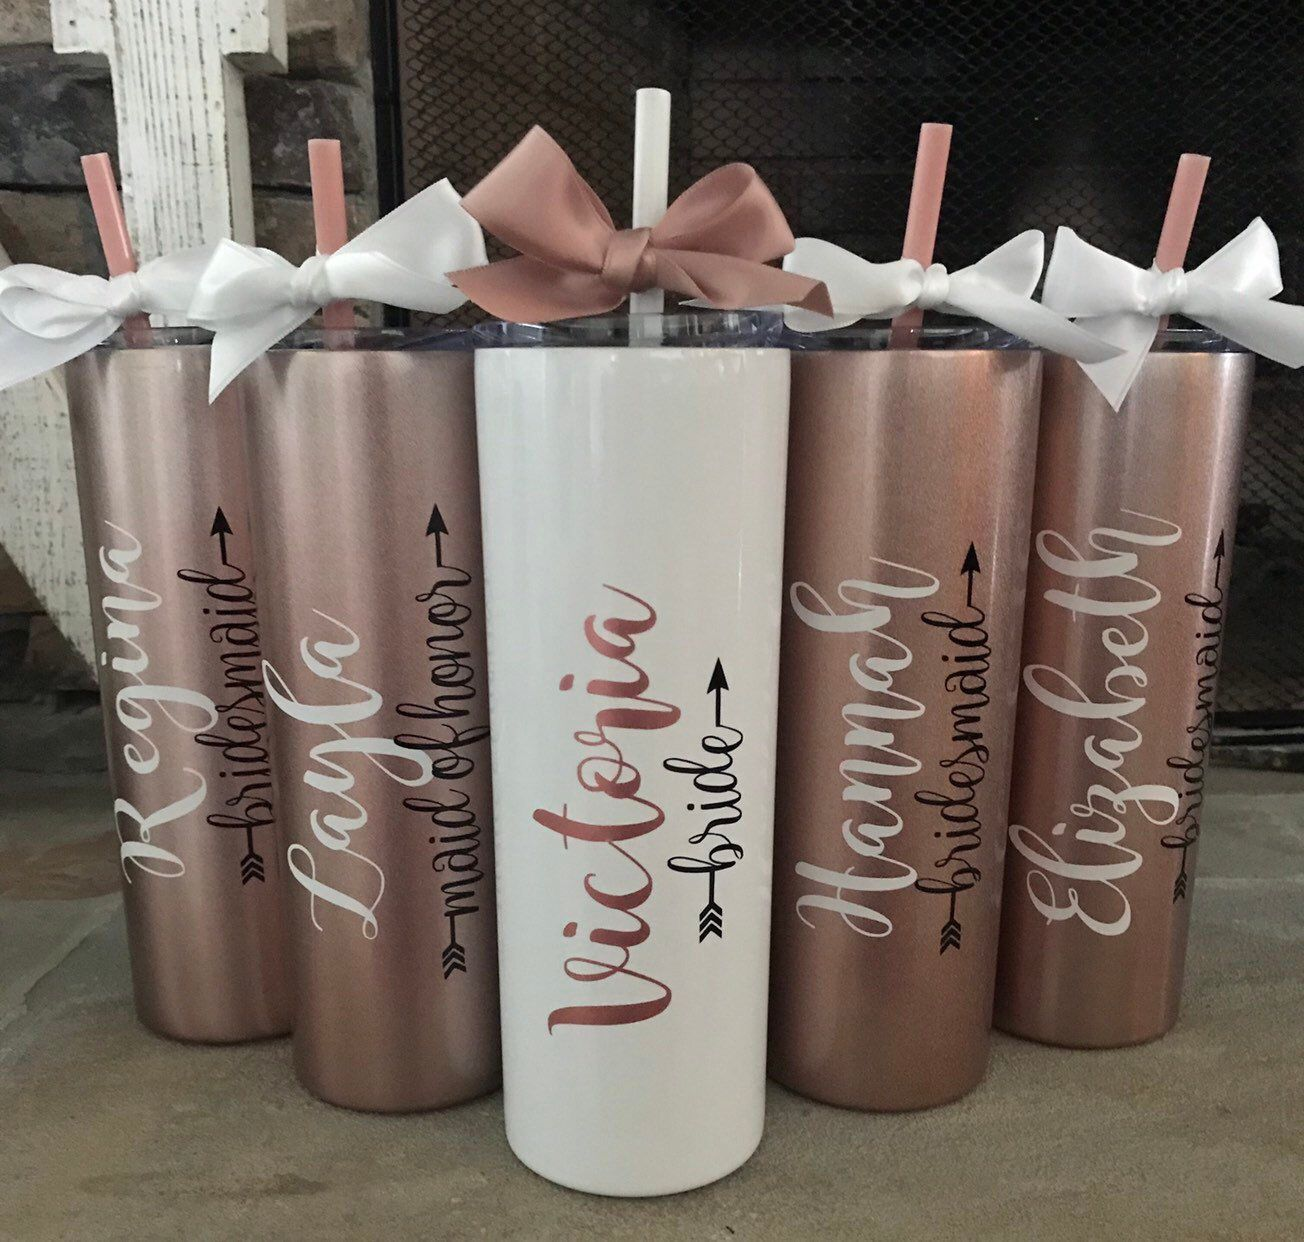 ROSE GOLD bridesmaid gift ideas bridesmaids gifts on a budget bridesmaid proposal box brides tribe gifts maid of honor tumbler gifts ROSE GOLD brbox